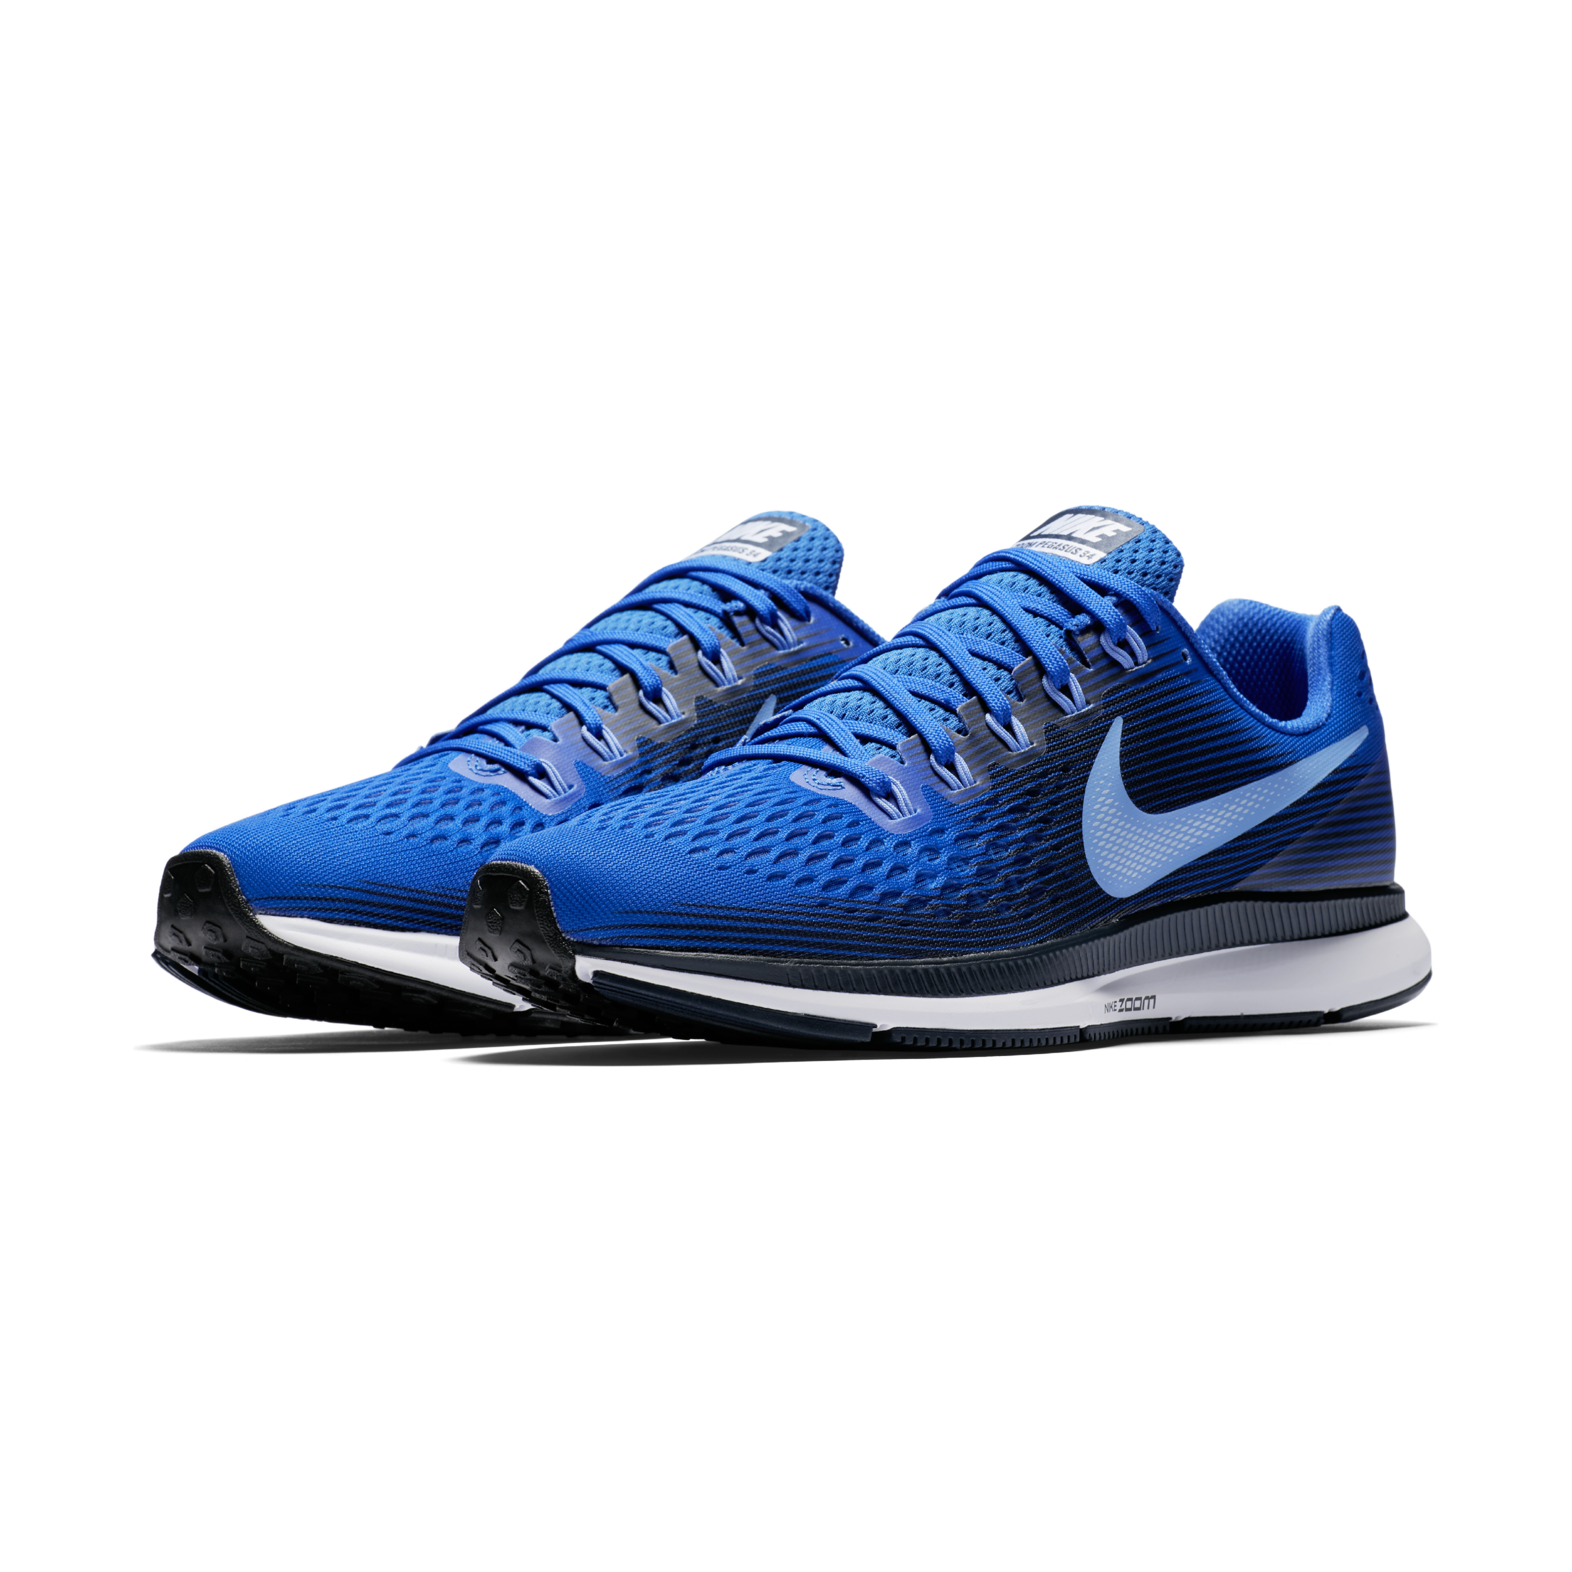 Nike Air Zoom Pegasus 34 Men/'s running shoes 880555 409 Multiple sizes